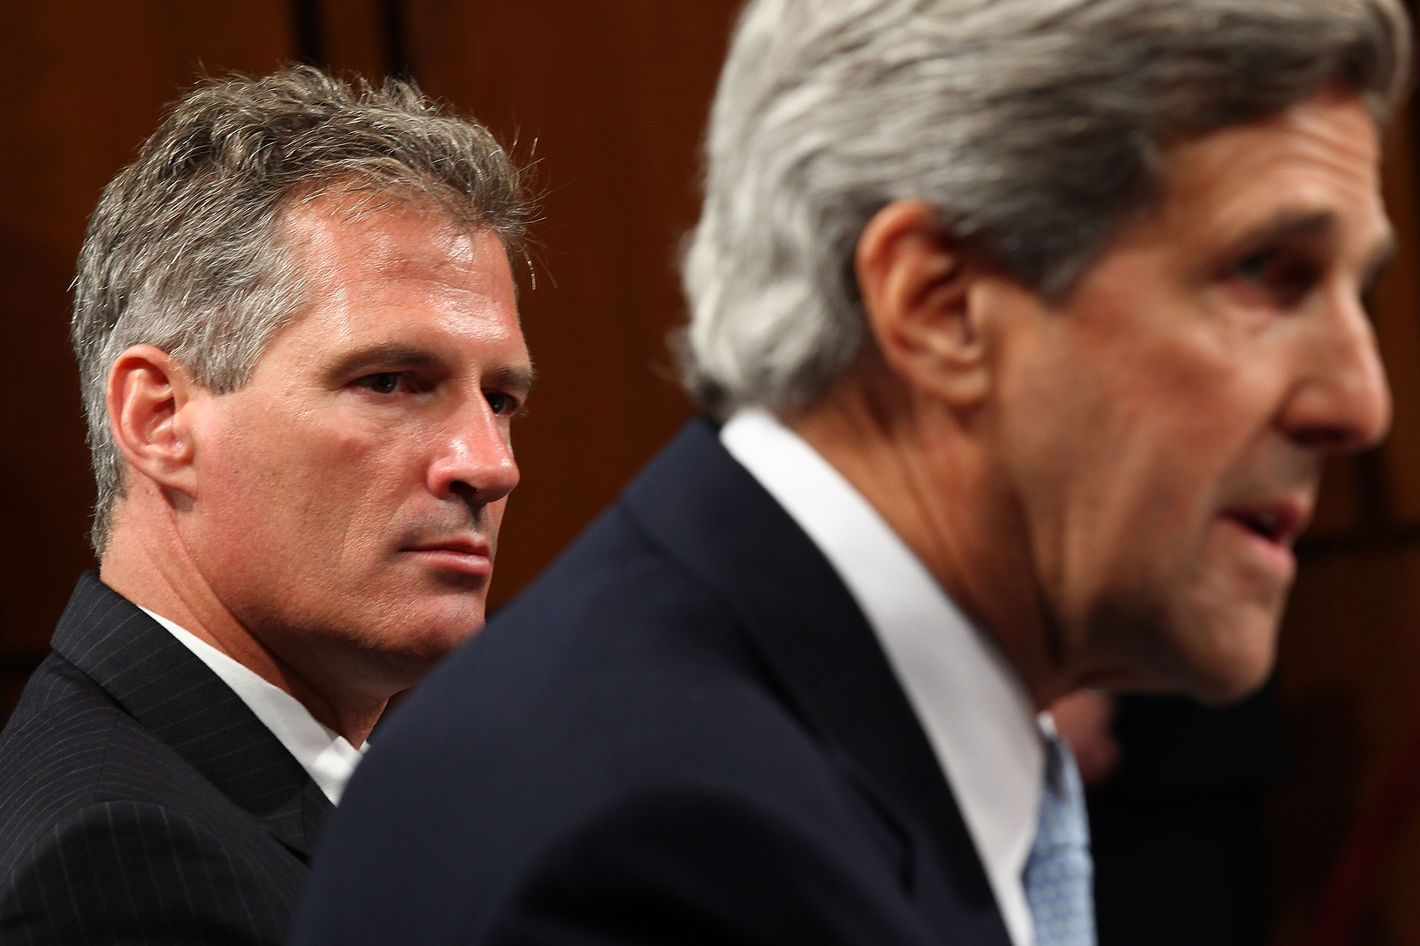 Sen. John Kerry (D-MA) (R) and Sen. Scott Brown (R-MA) (L) introduce Supreme Court nominee Elena Kagan to the Senate Judiciary Committee on the first day of her confirmation hearings on Capitol Hill on June 28, 2010 in Washington, DC.  Kagan is U.S. President Barack Obama's second Supreme Court nominee since taking office.